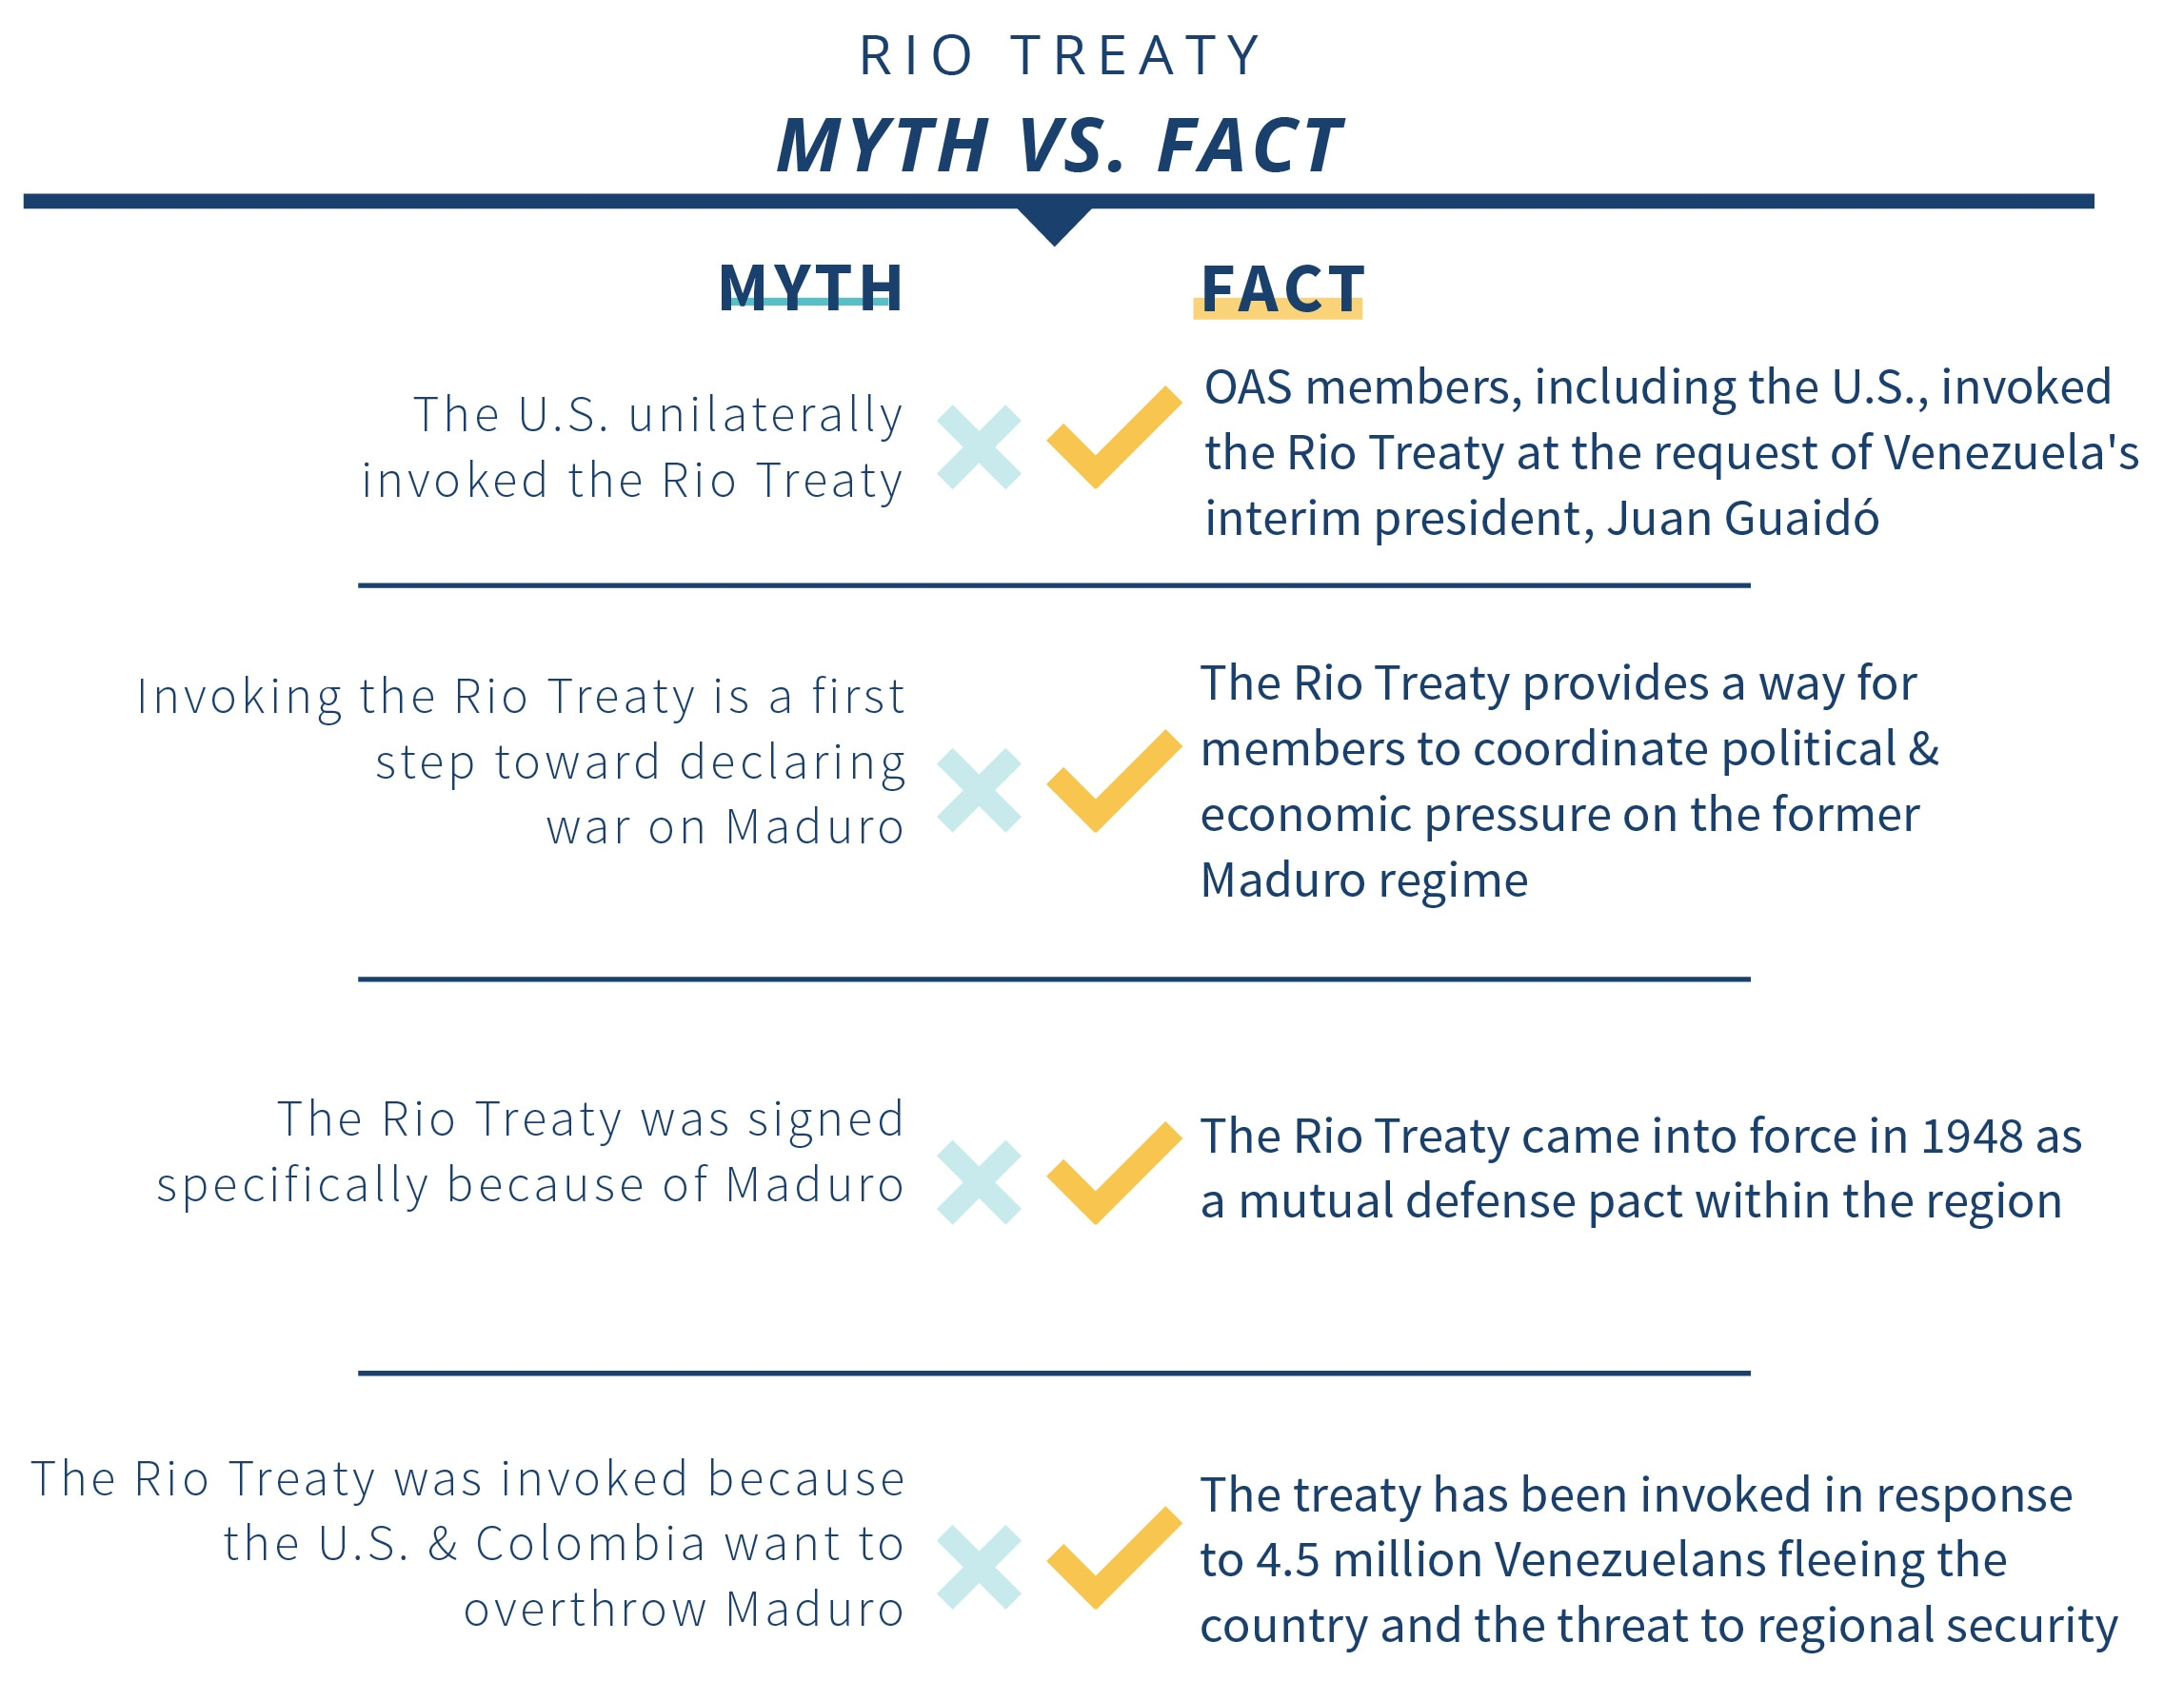 Infographic with side-by-side myths and facts about the Rio Treaty (State Dept./S. Gemeny Wilkinson)